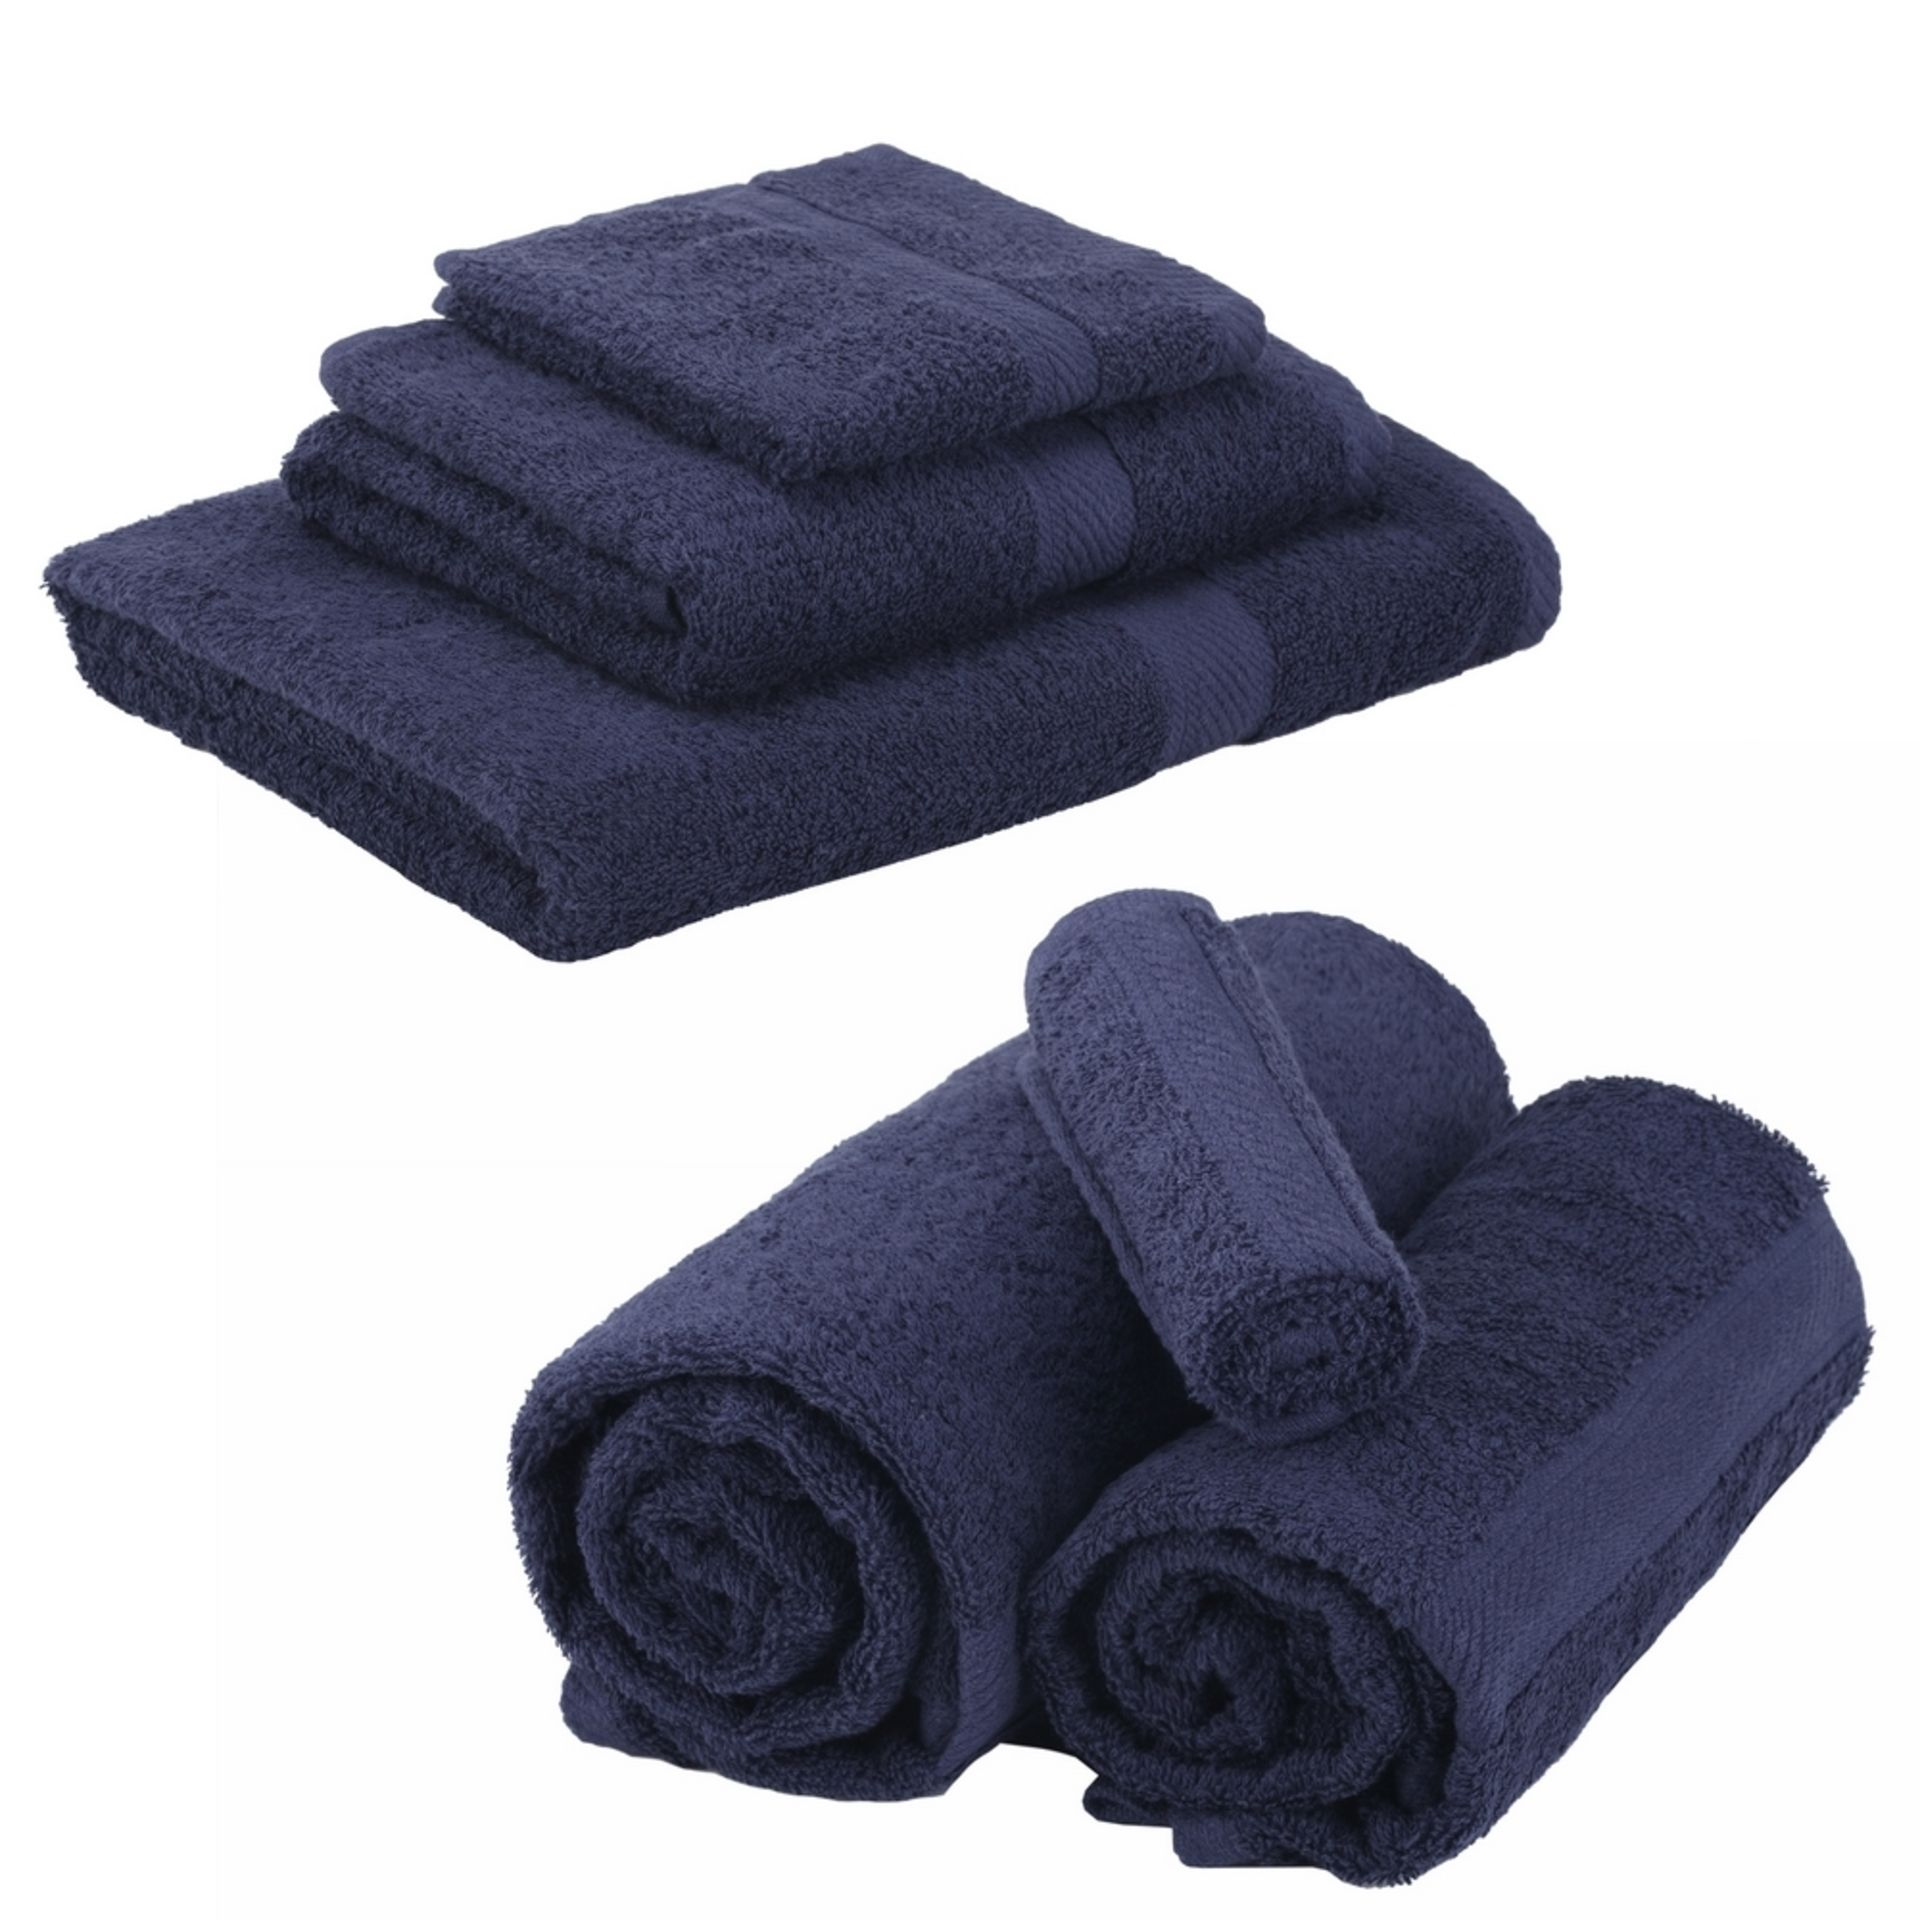 + VAT Brand New Royal Blue 6 Piece Towel Bale Set With 2 Face Towels - 2 Hand Towels And Two Bath